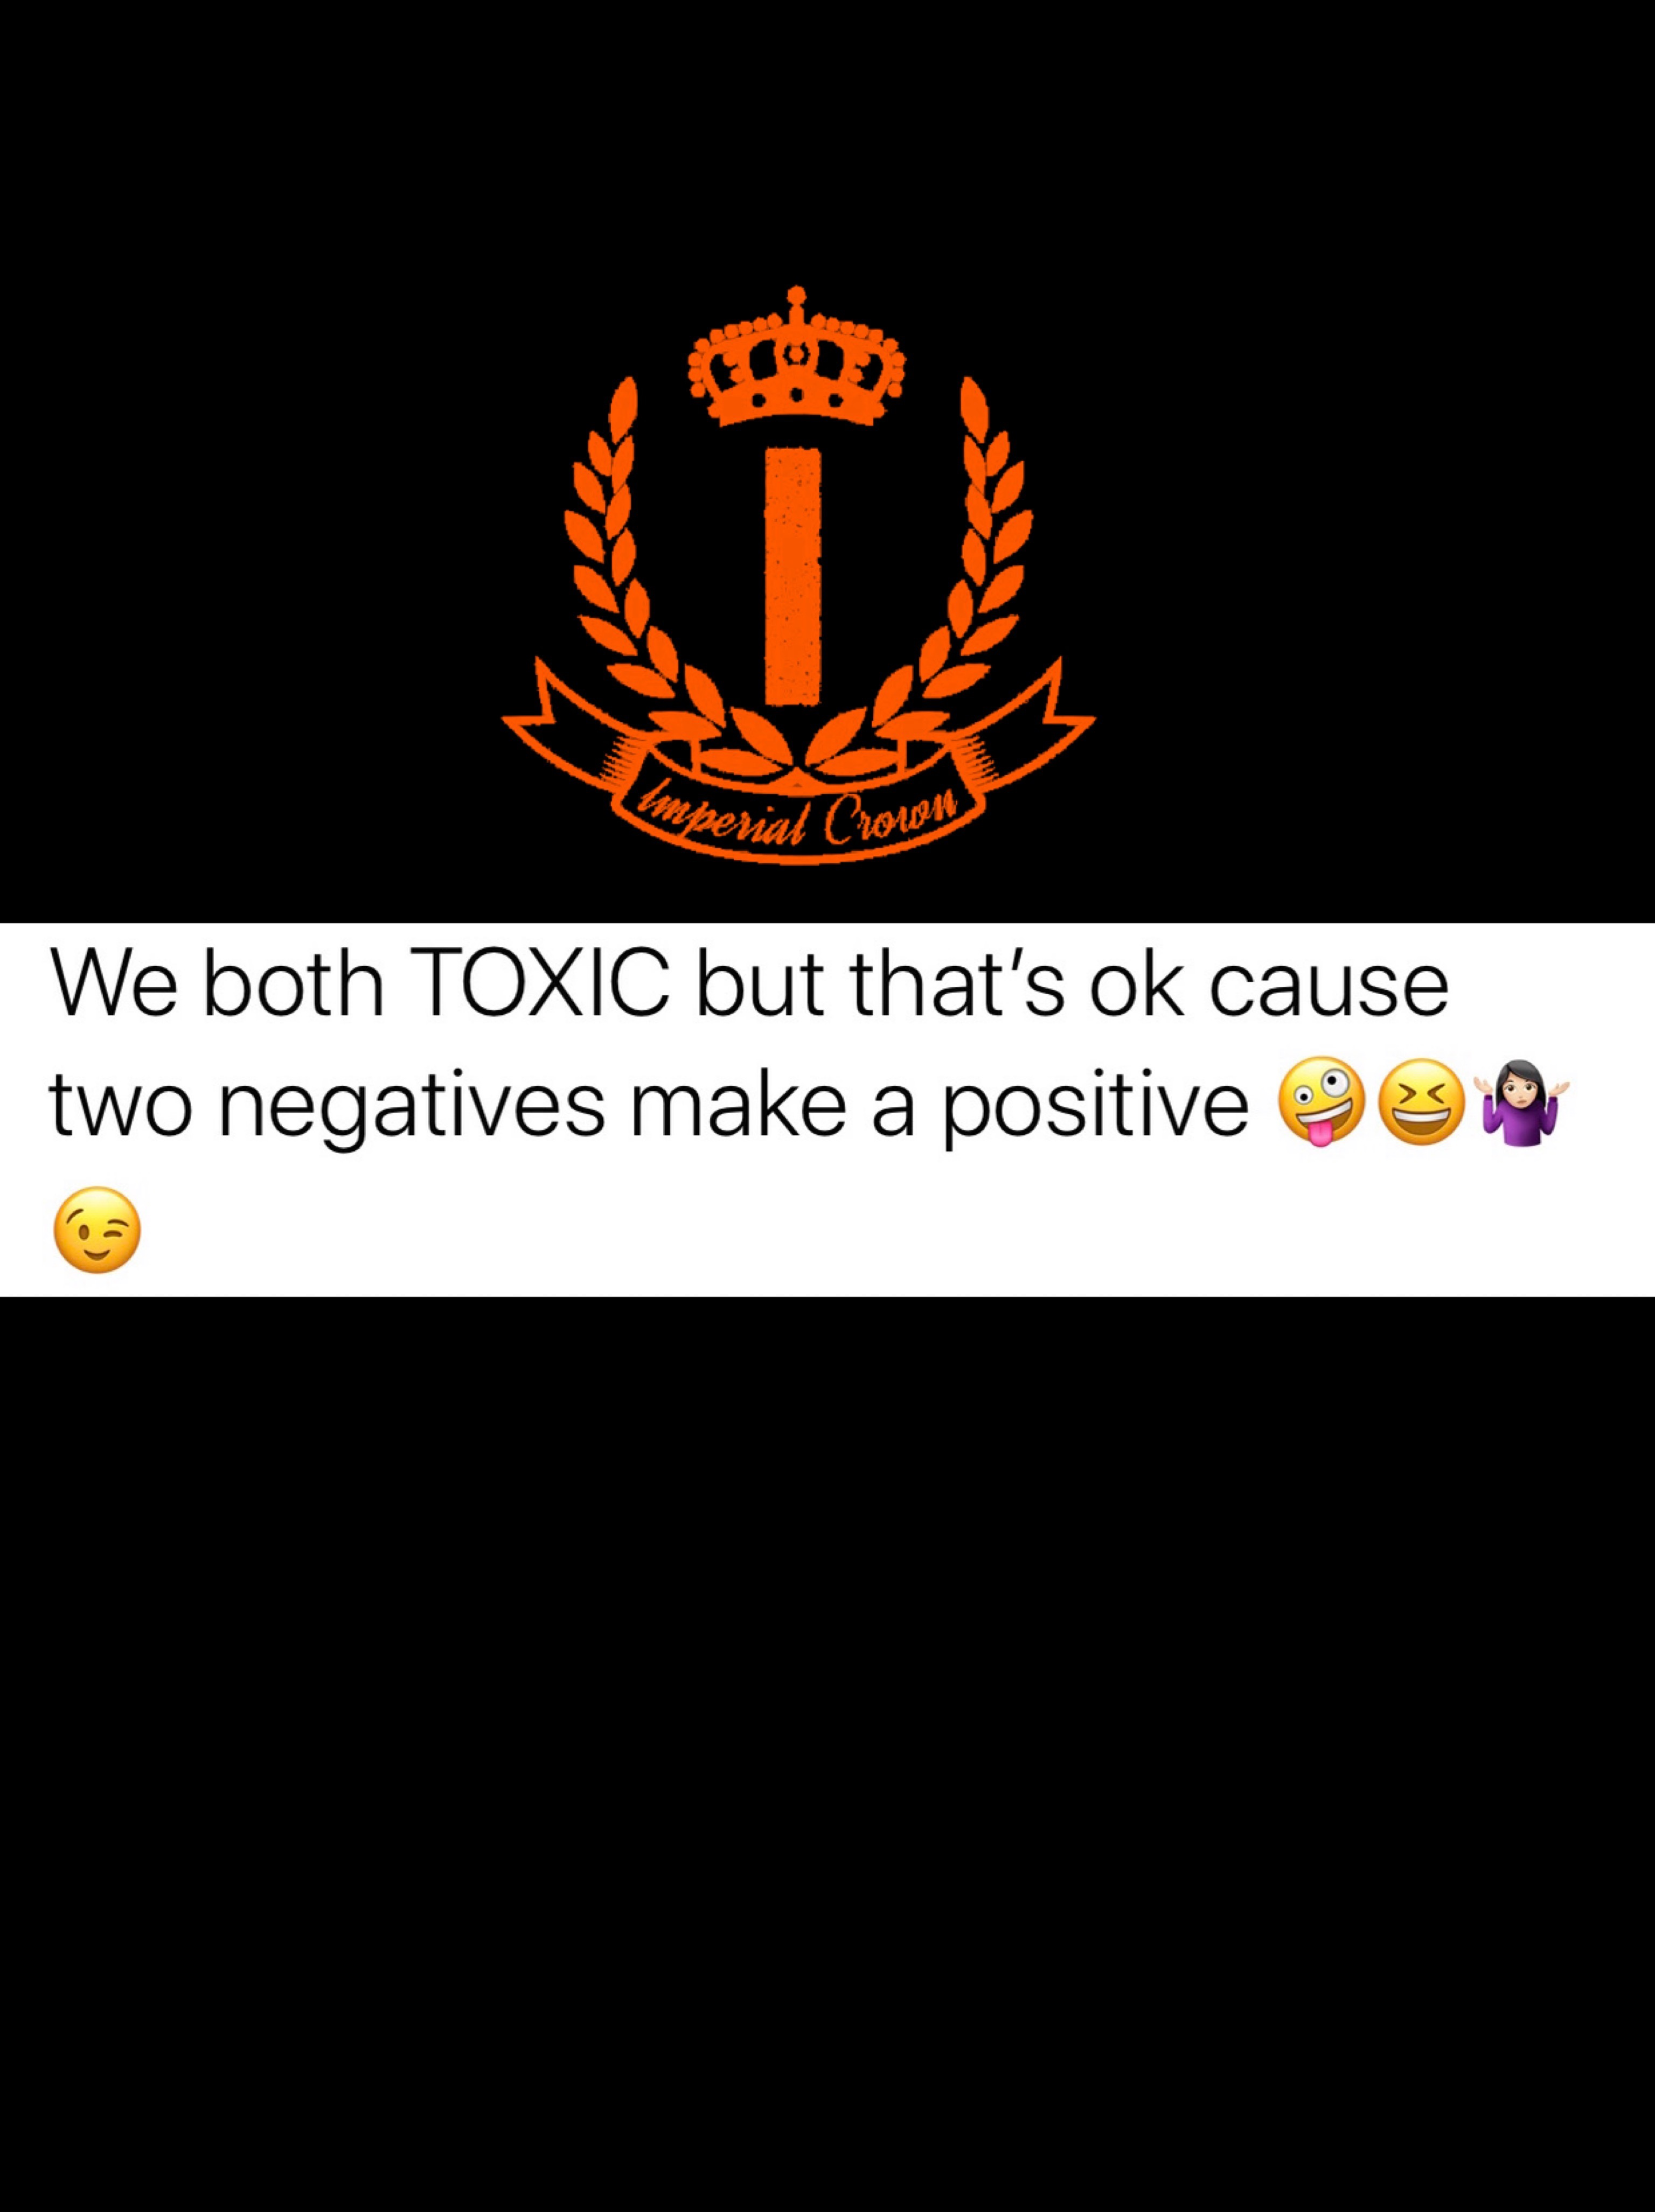 We both toxic but that's ok cause two negatives make a positive